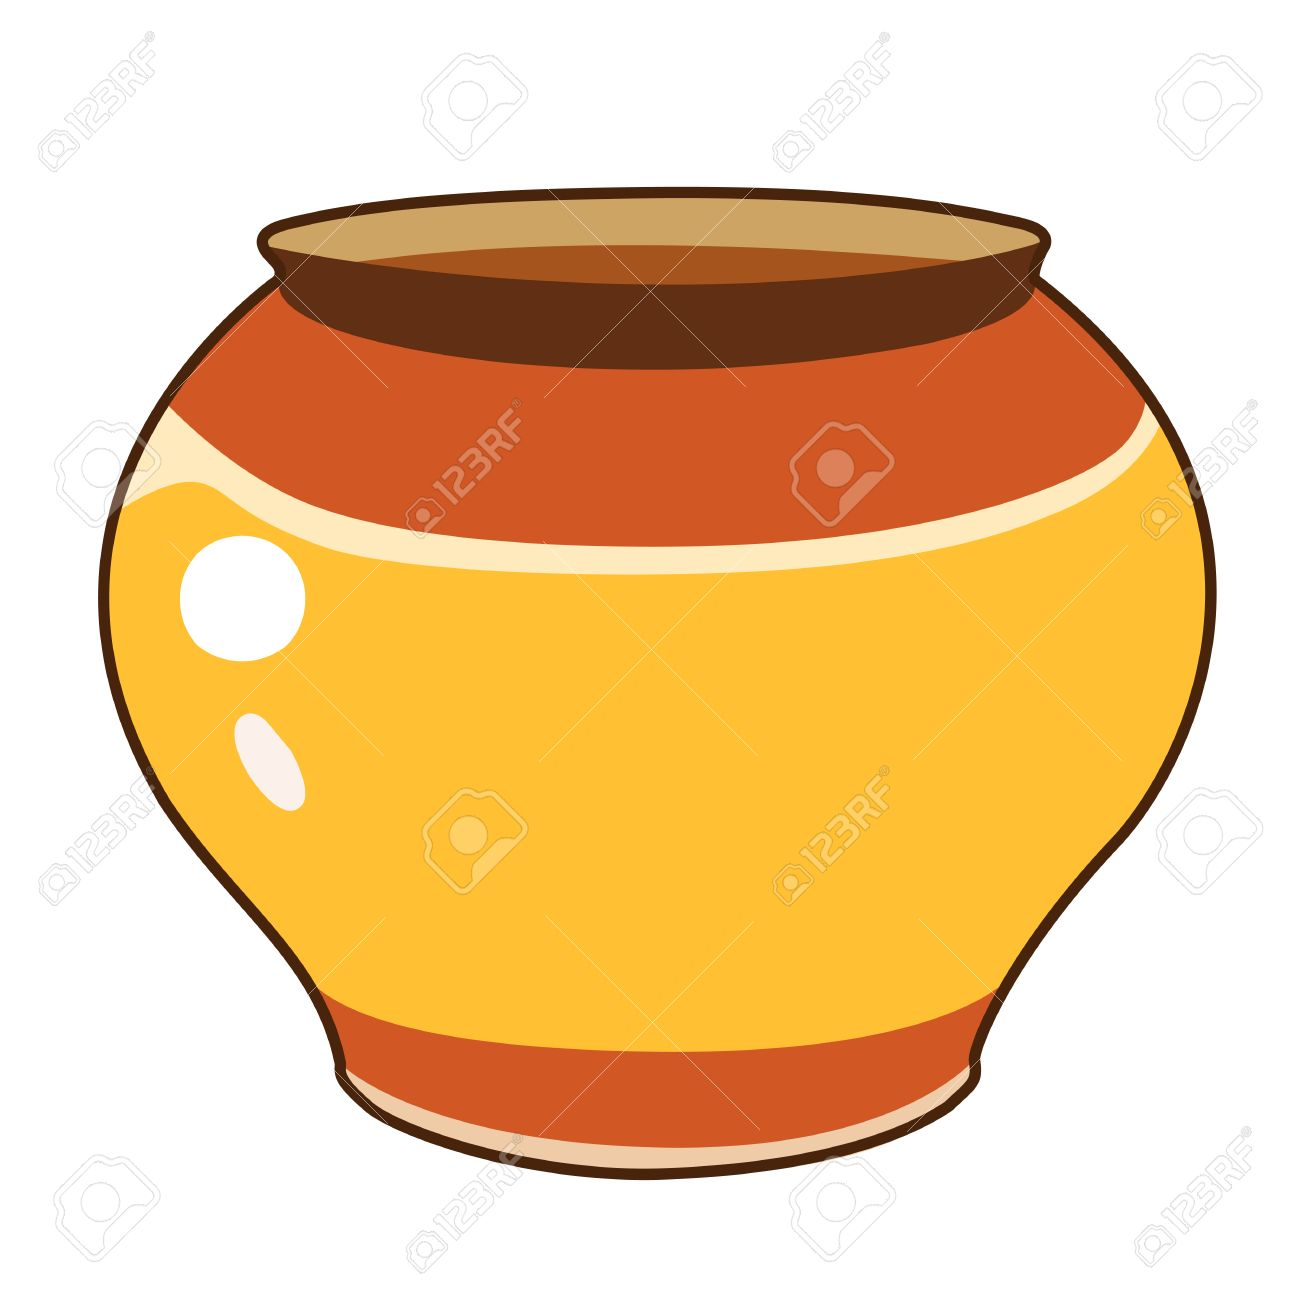 clay pot isolated illustration on white background royalty free rh 123rf com Clay Pots Clay Pots